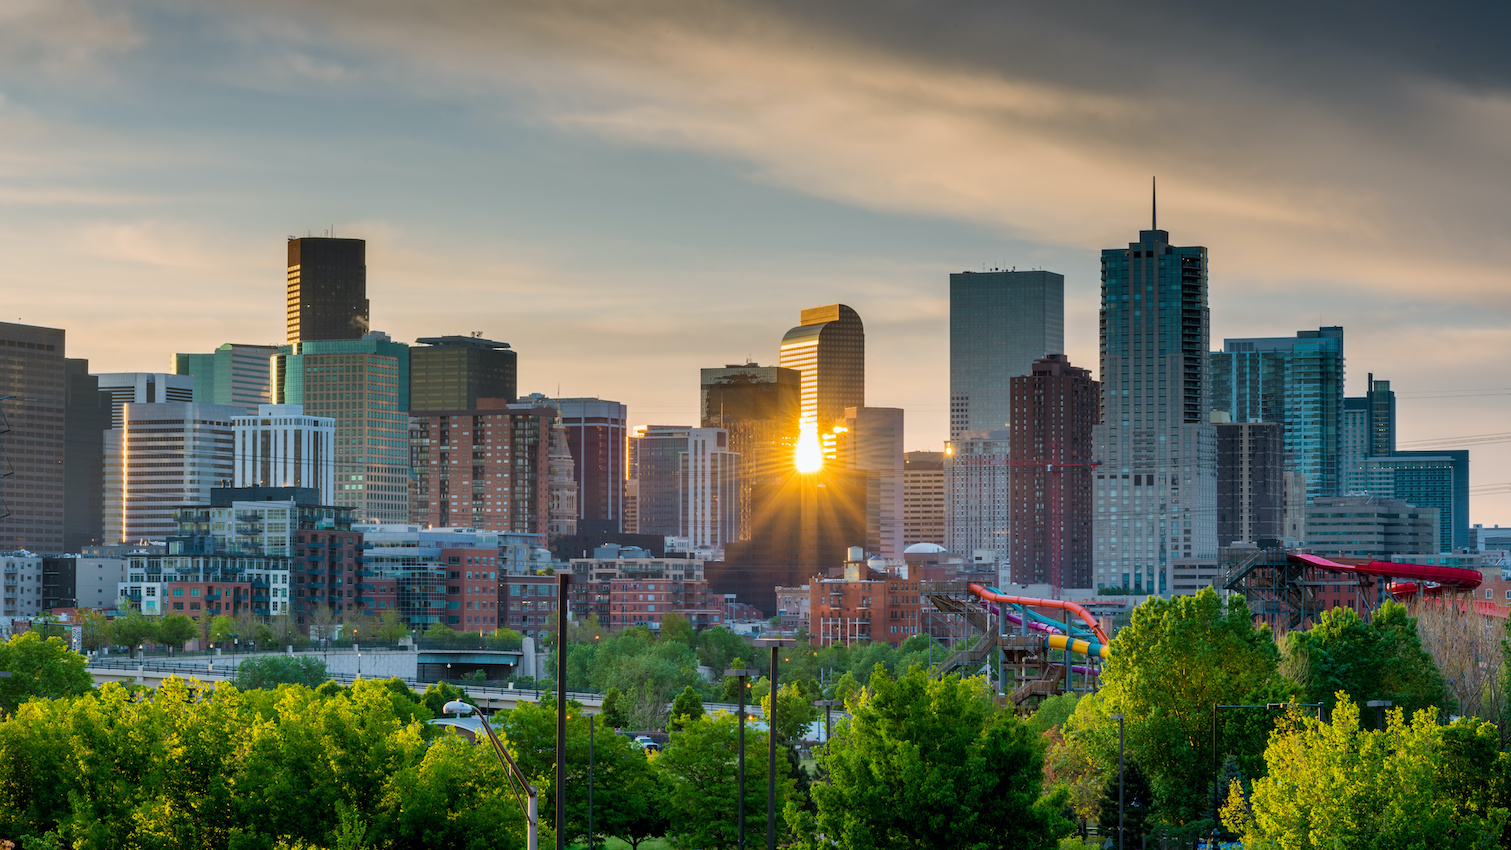 Sunset view of Denver, Colorado